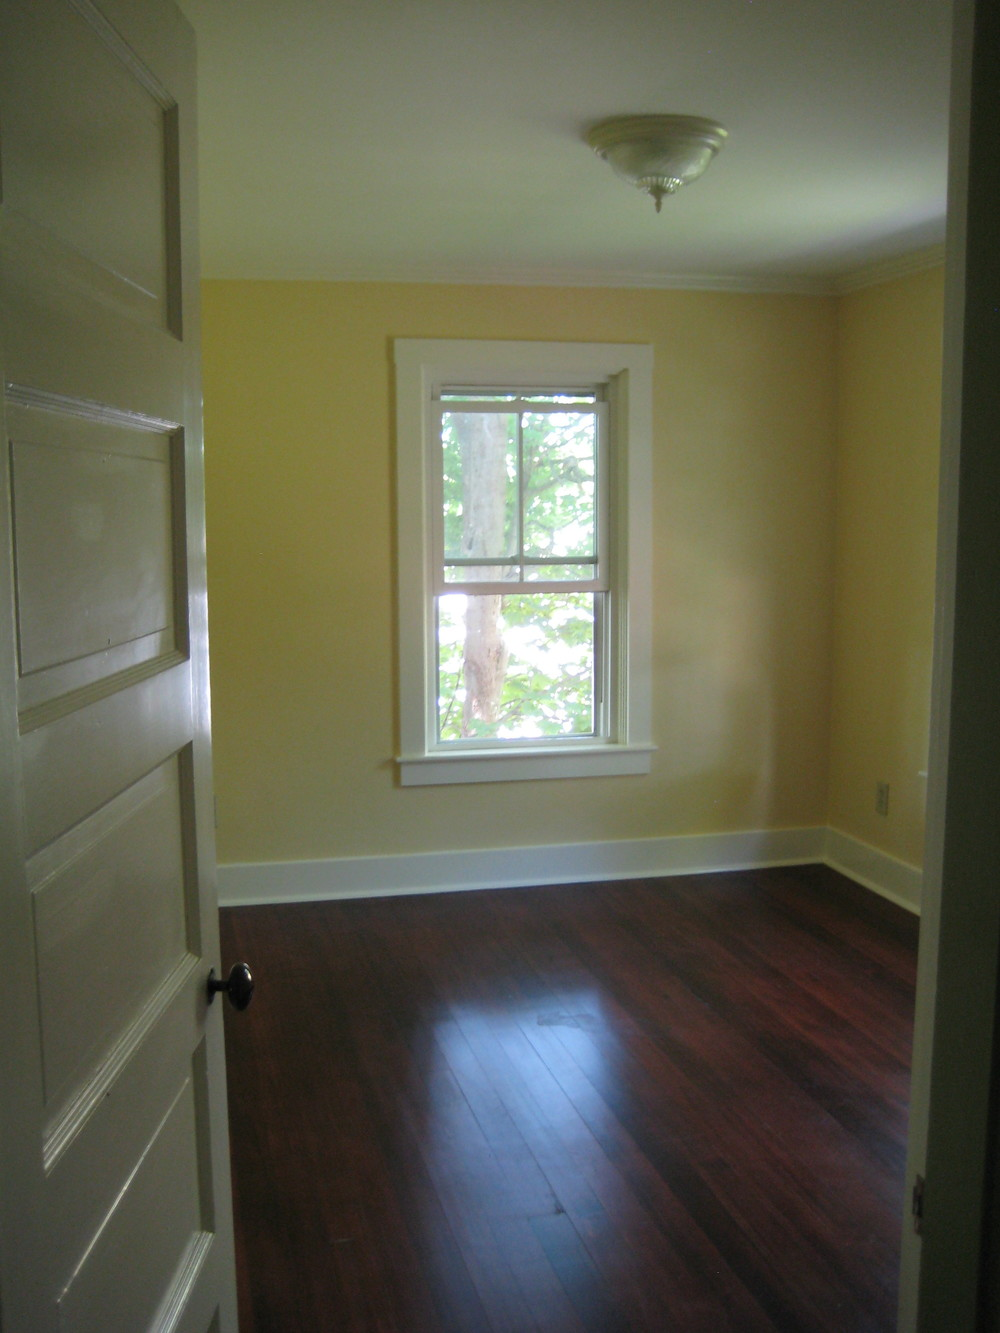 woodruff yellow bedroom.jpg